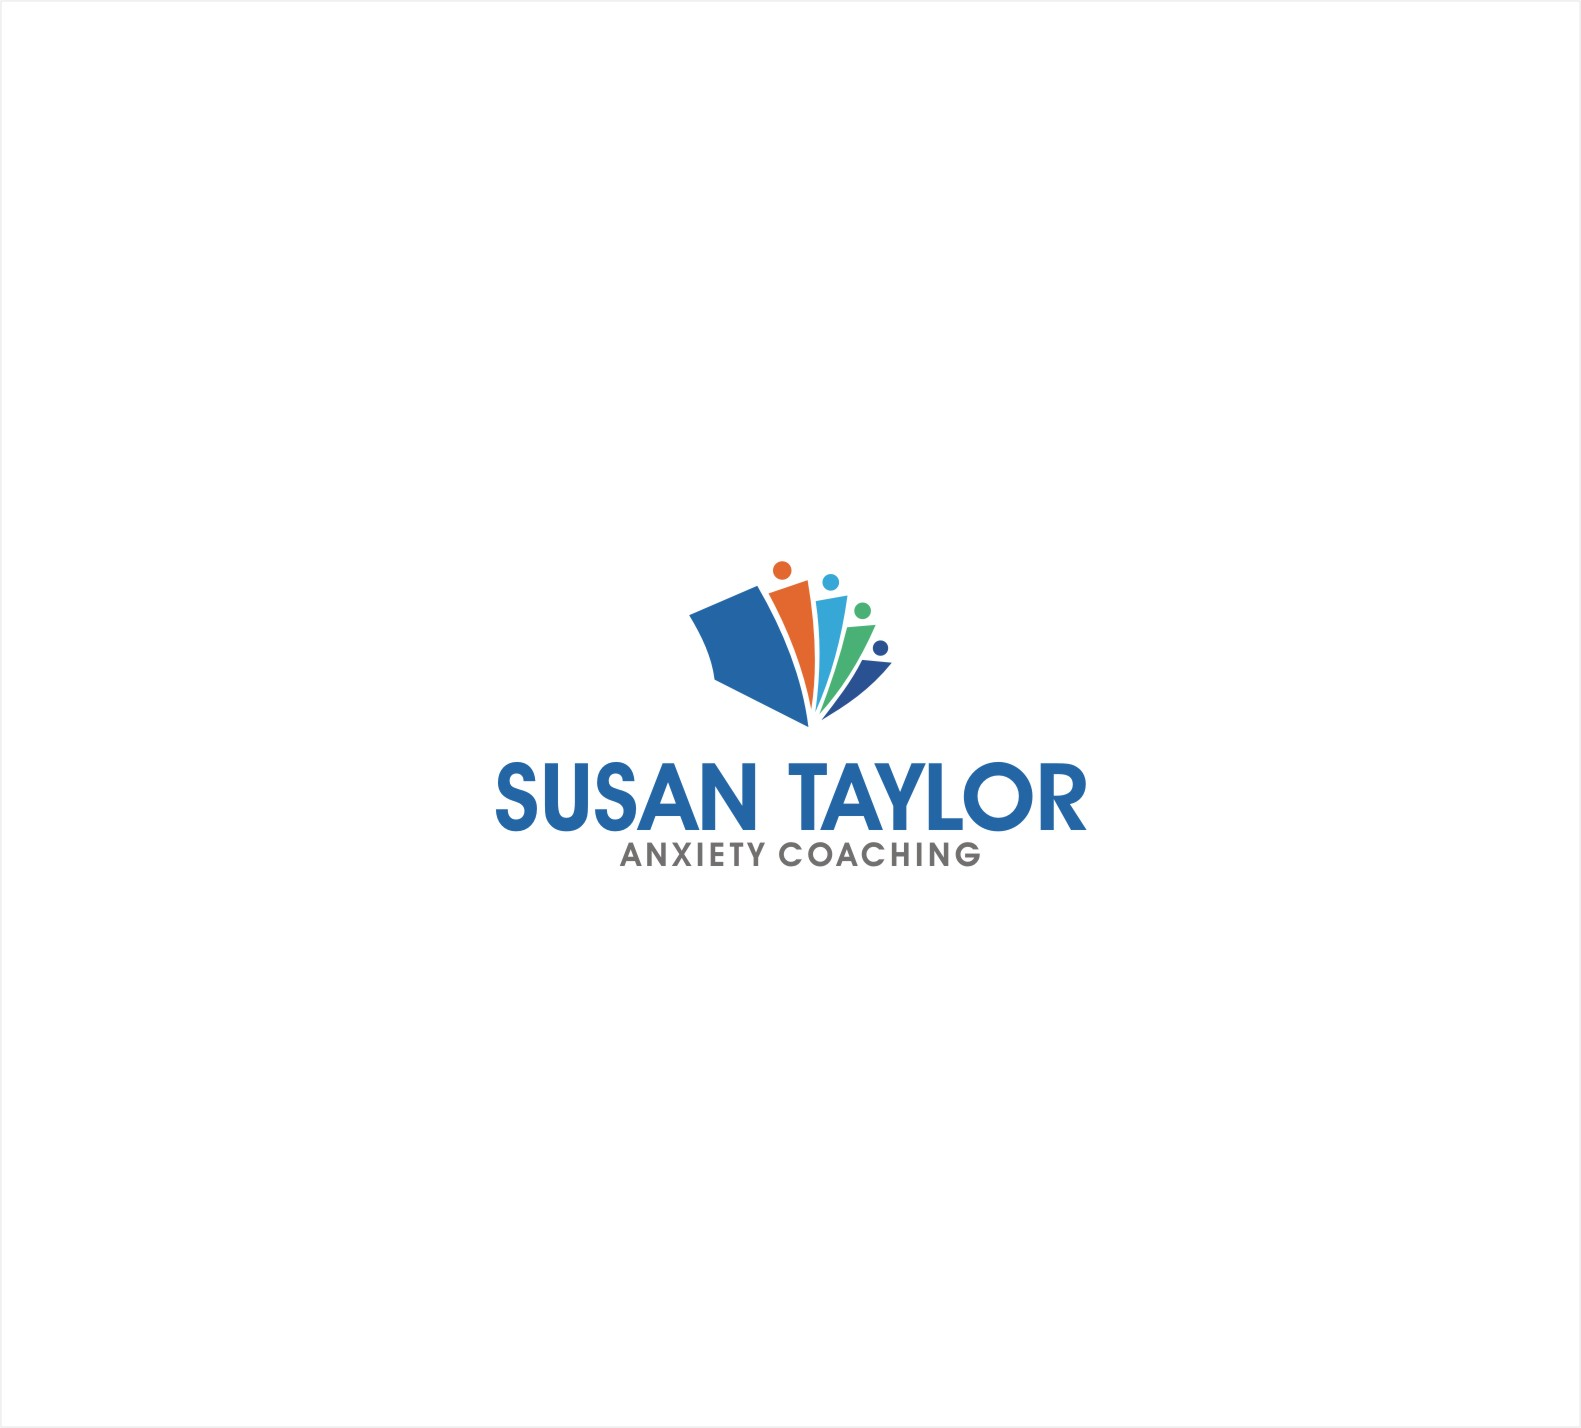 Susan Taylor Anxiety Coaching - design #1773406